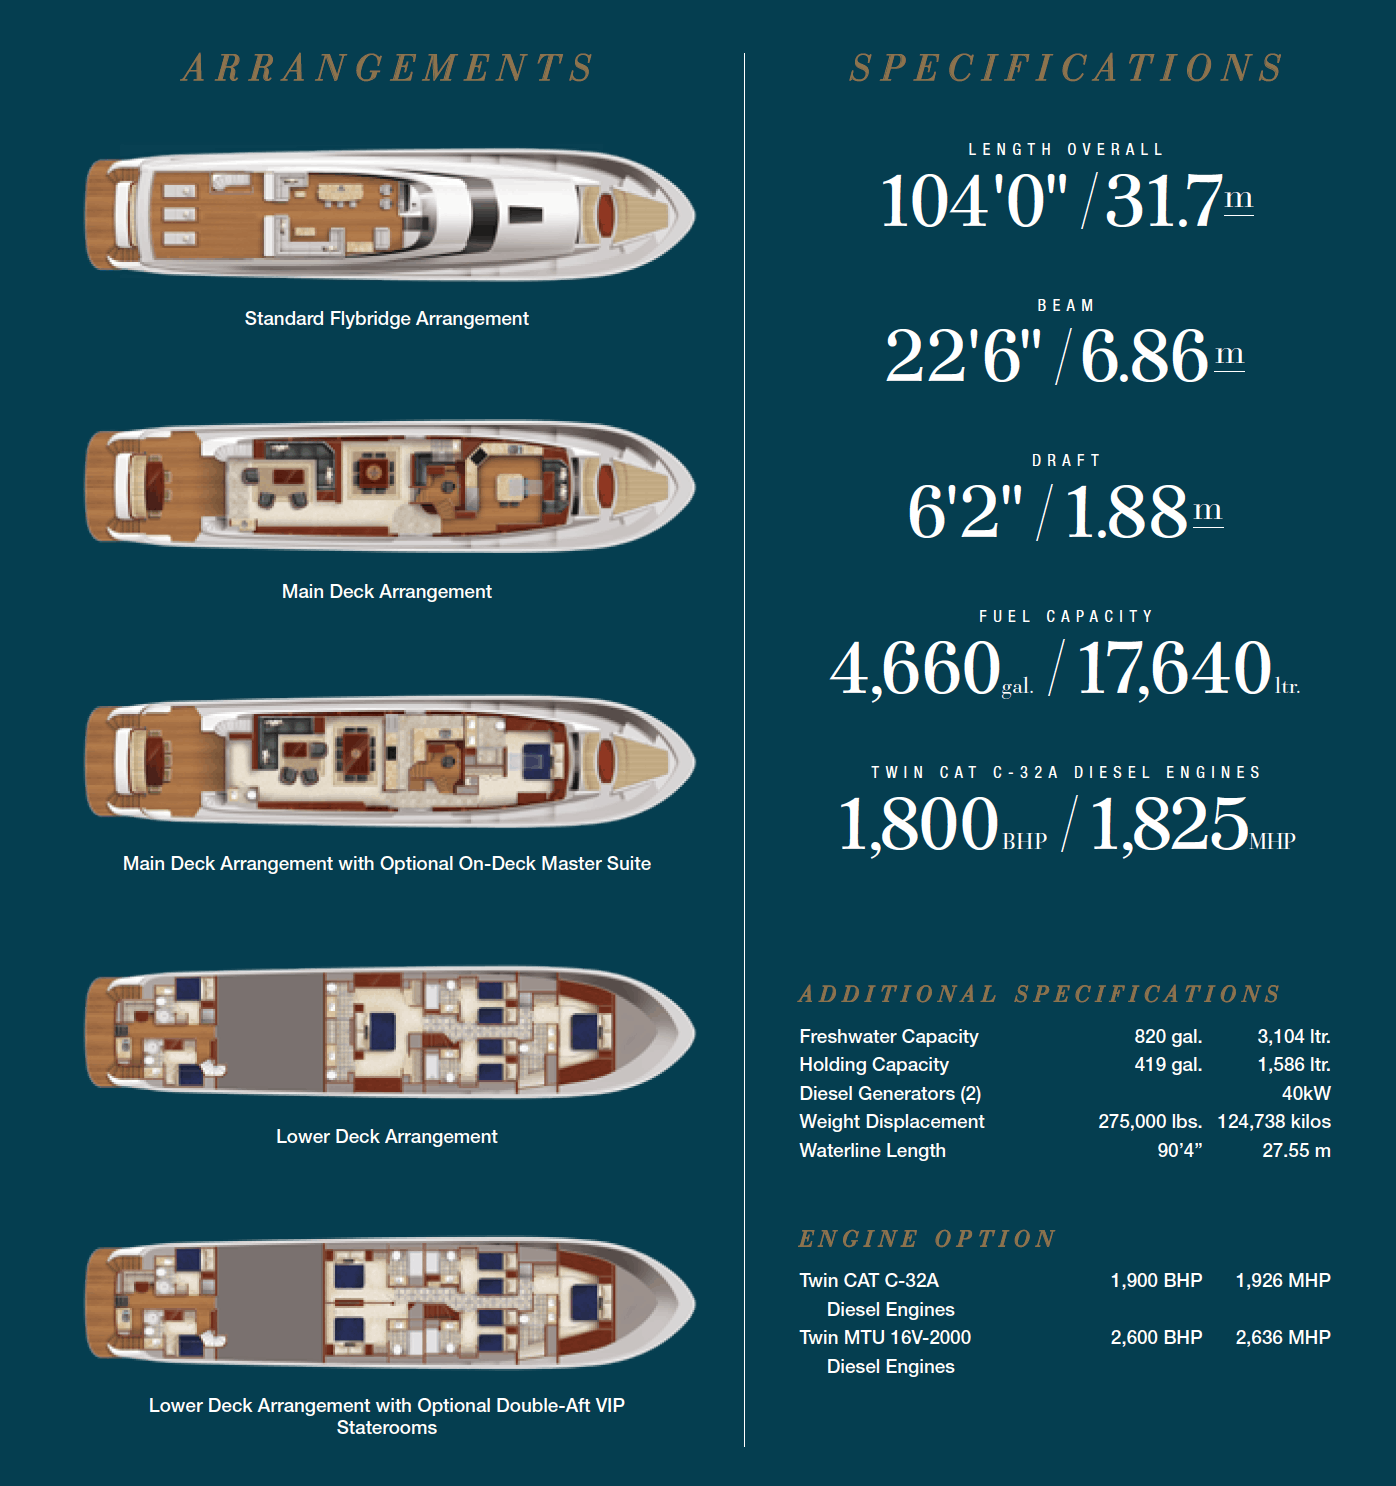 Hatteras 105 Raised Pilothouse Specs and Layouts